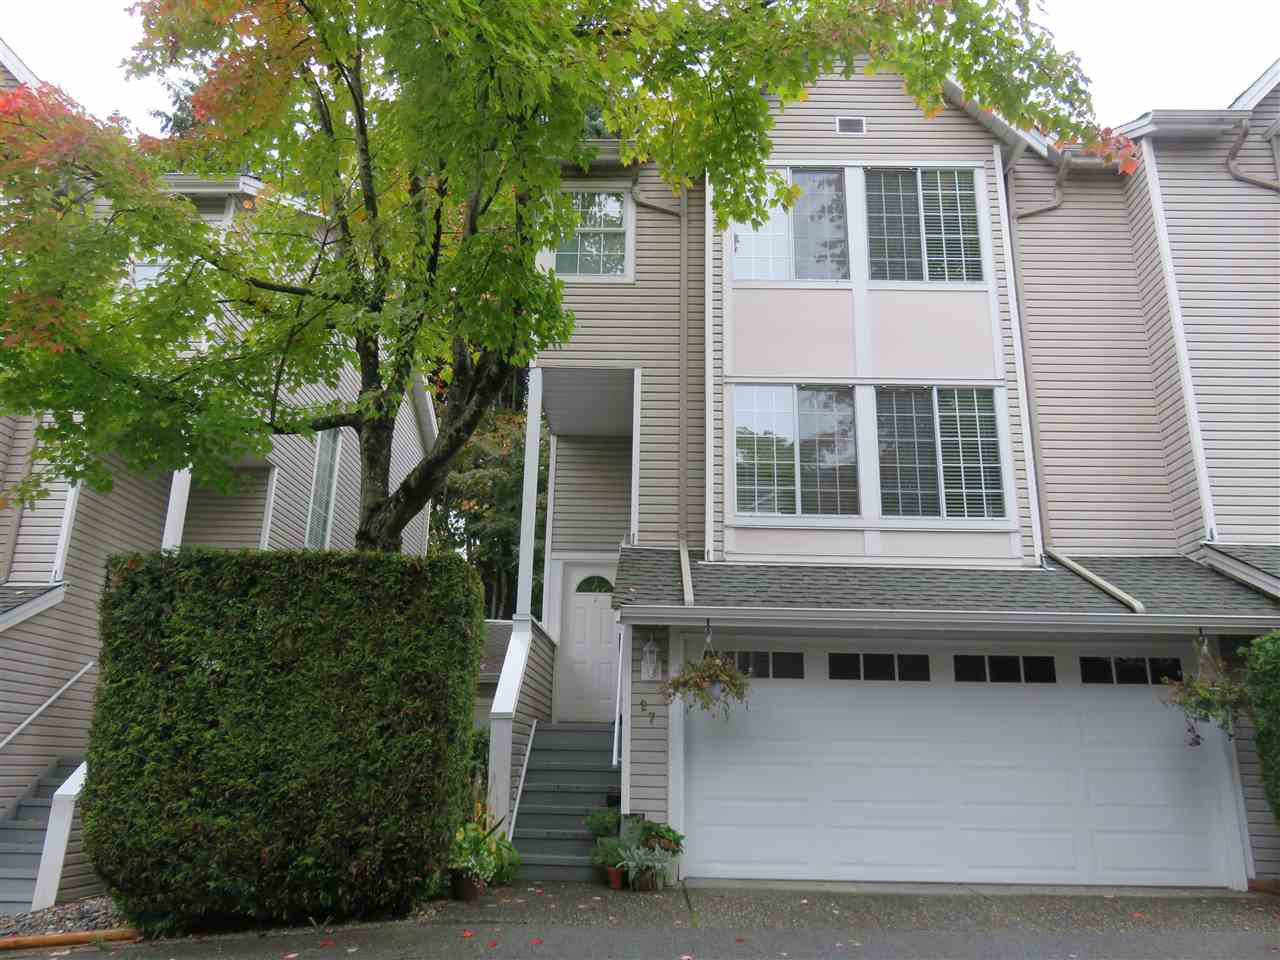 "Main Photo: 27 2600 BEAVERBROOK Crescent in Burnaby: Simon Fraser Hills Townhouse for sale in ""AVONLEA"" (Burnaby North)  : MLS®# R2411470"